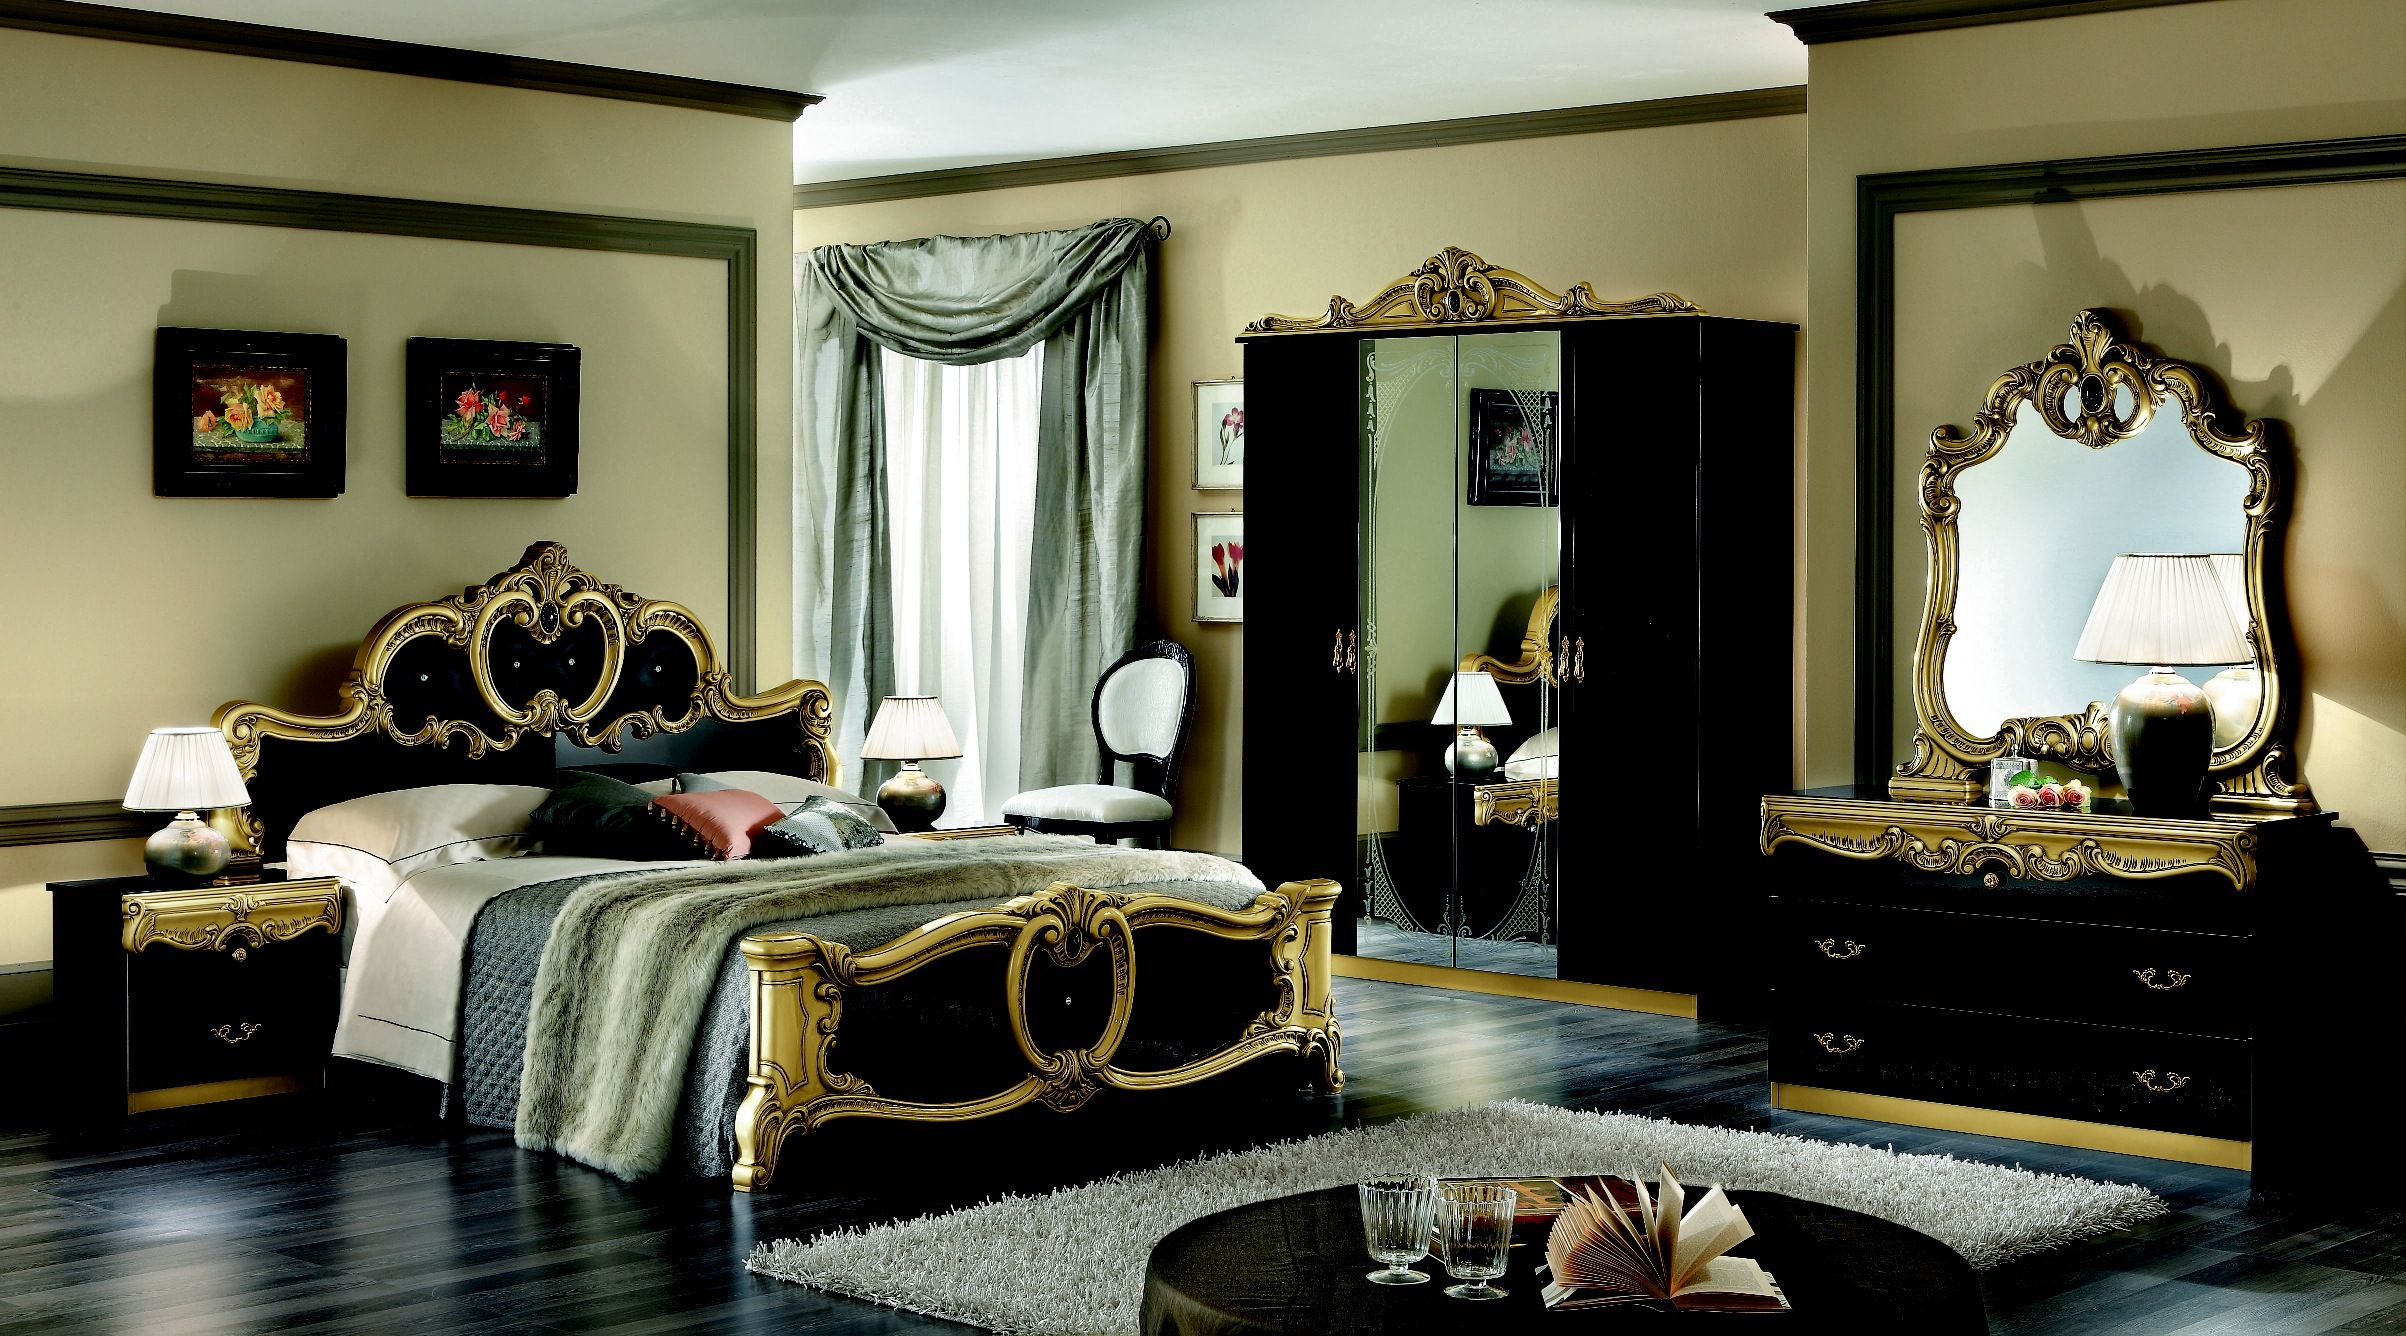 Bedroom Exciting Modern Bedroom Suite Showing Beautiful Dark Bed Gold Accent Carving Headboard Also Laminate Silver Bedroom Luxurious Bedrooms Italian Bedroom